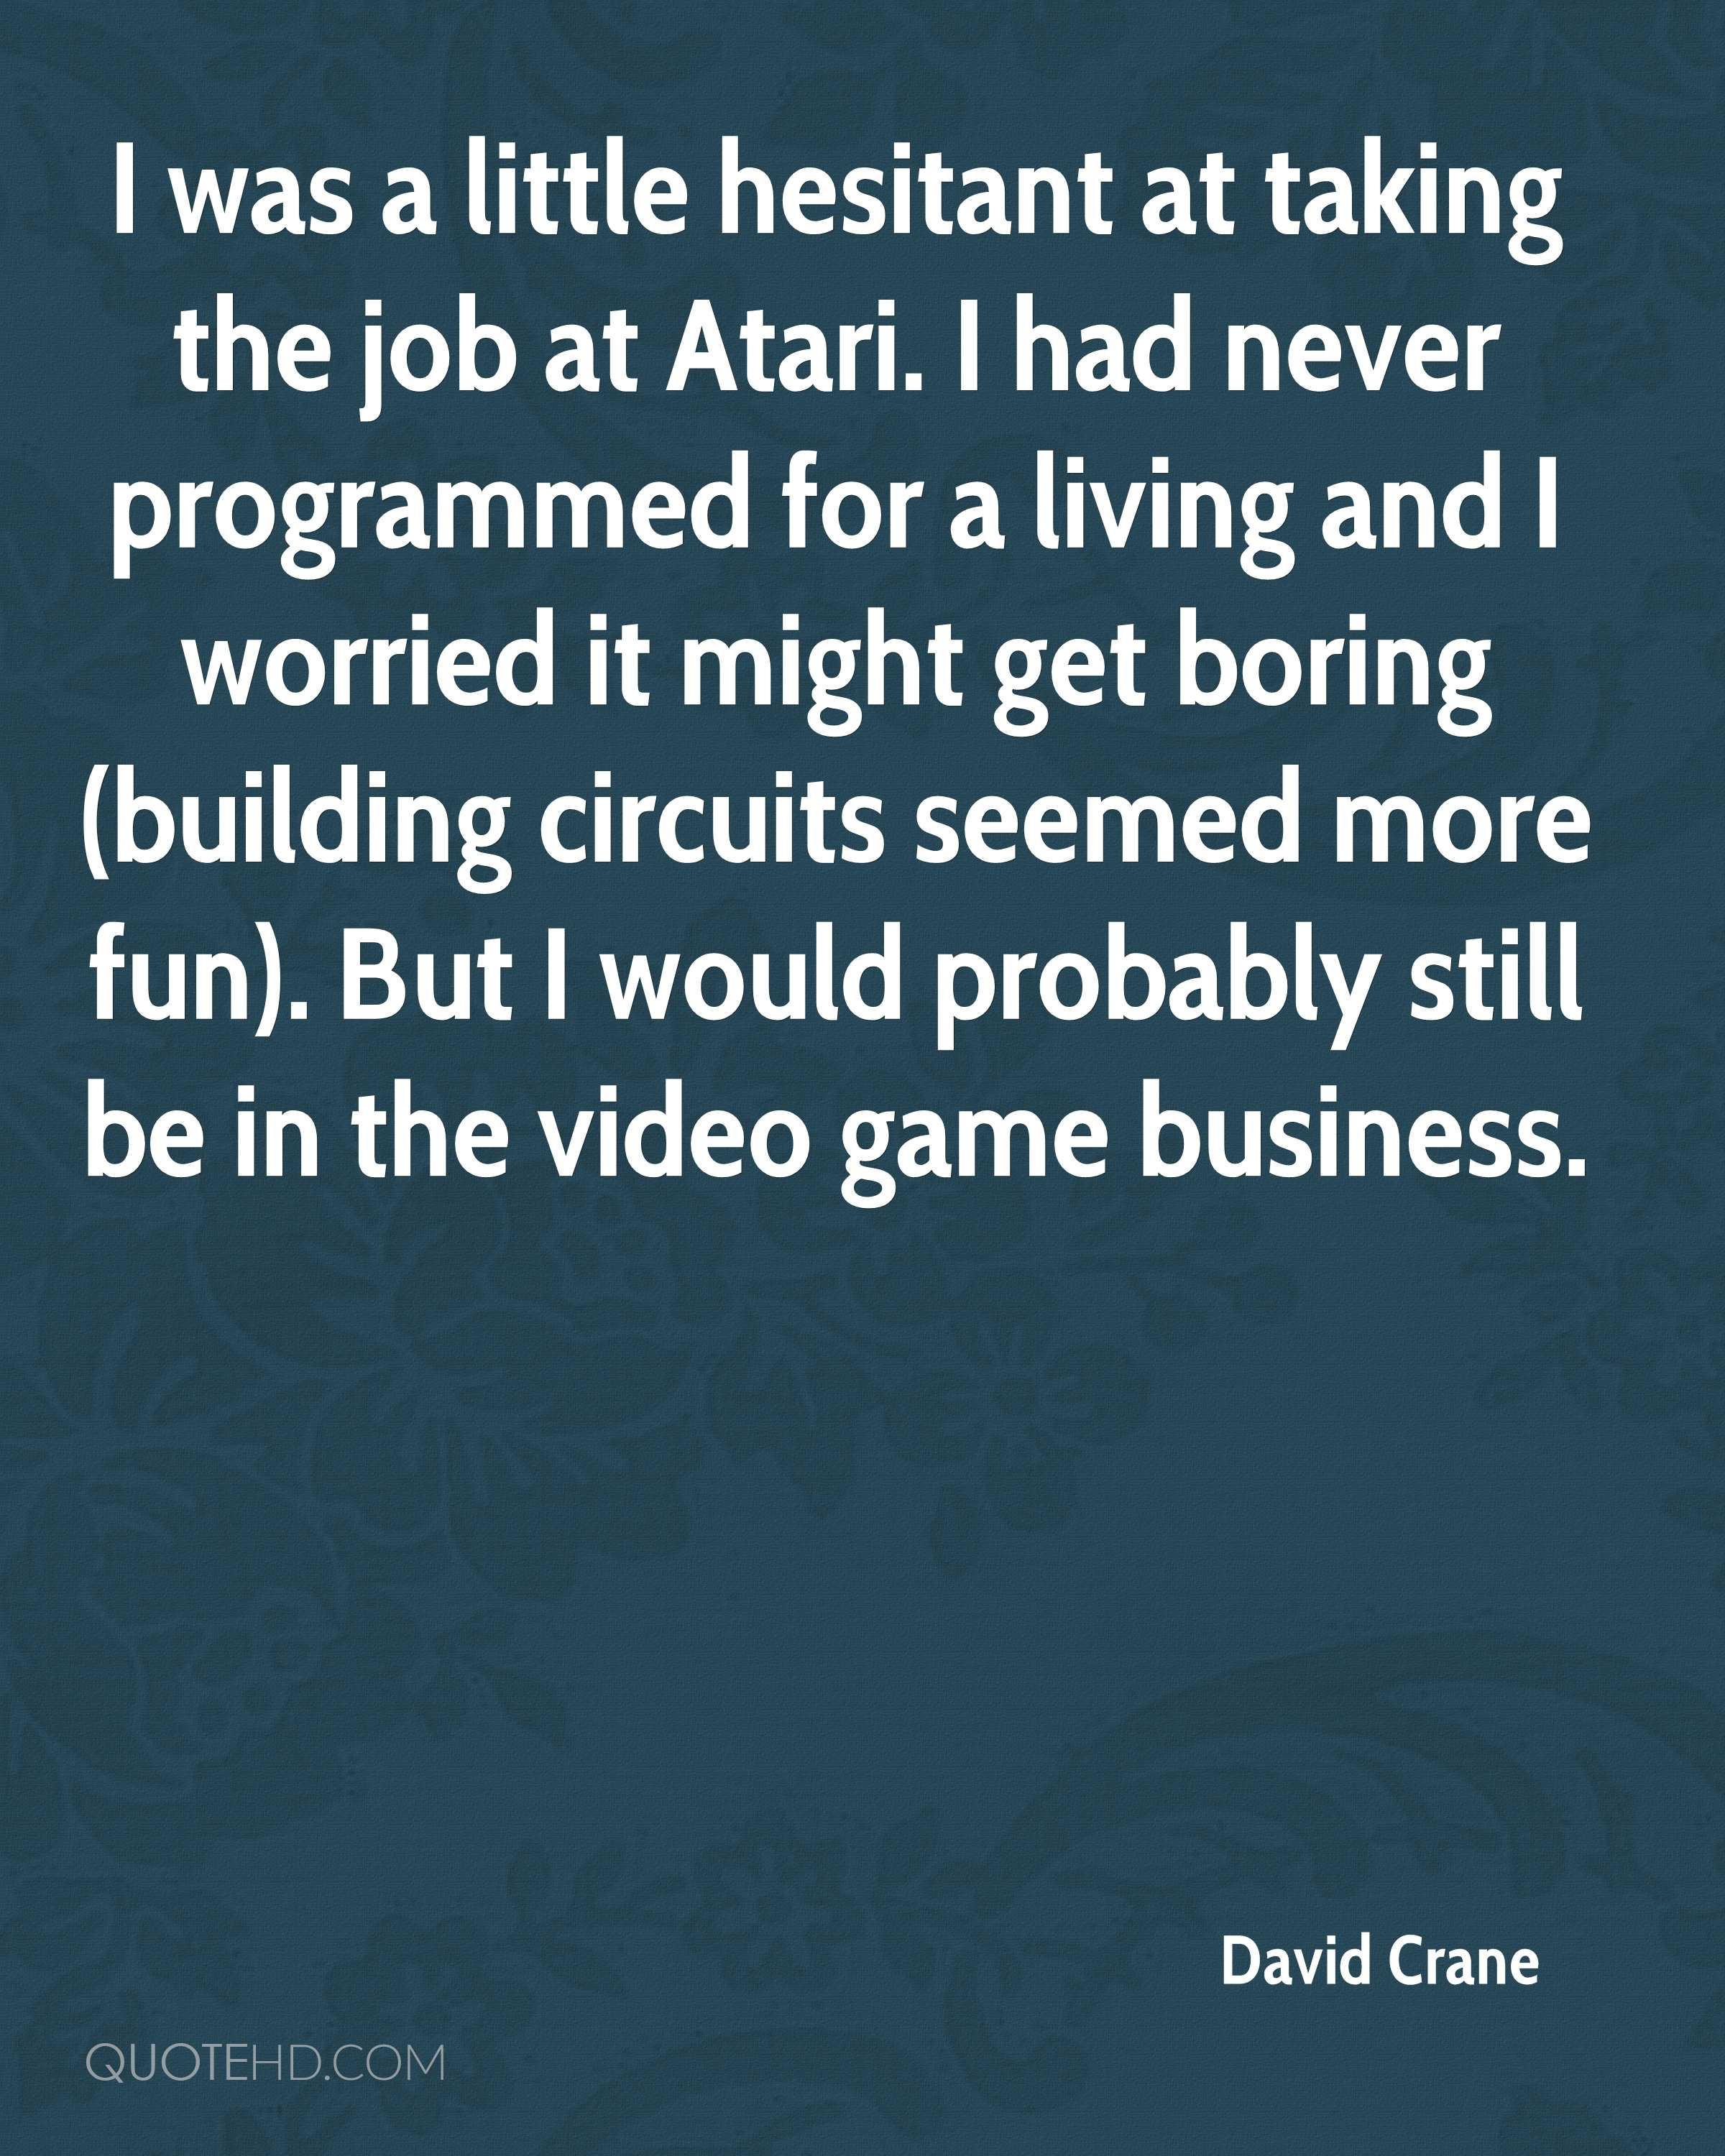 I was a little hesitant at taking the job at Atari. I had never programmed for a living and I worried it might get boring (building circuits seemed more fun). But I would probably still be in the video game business.